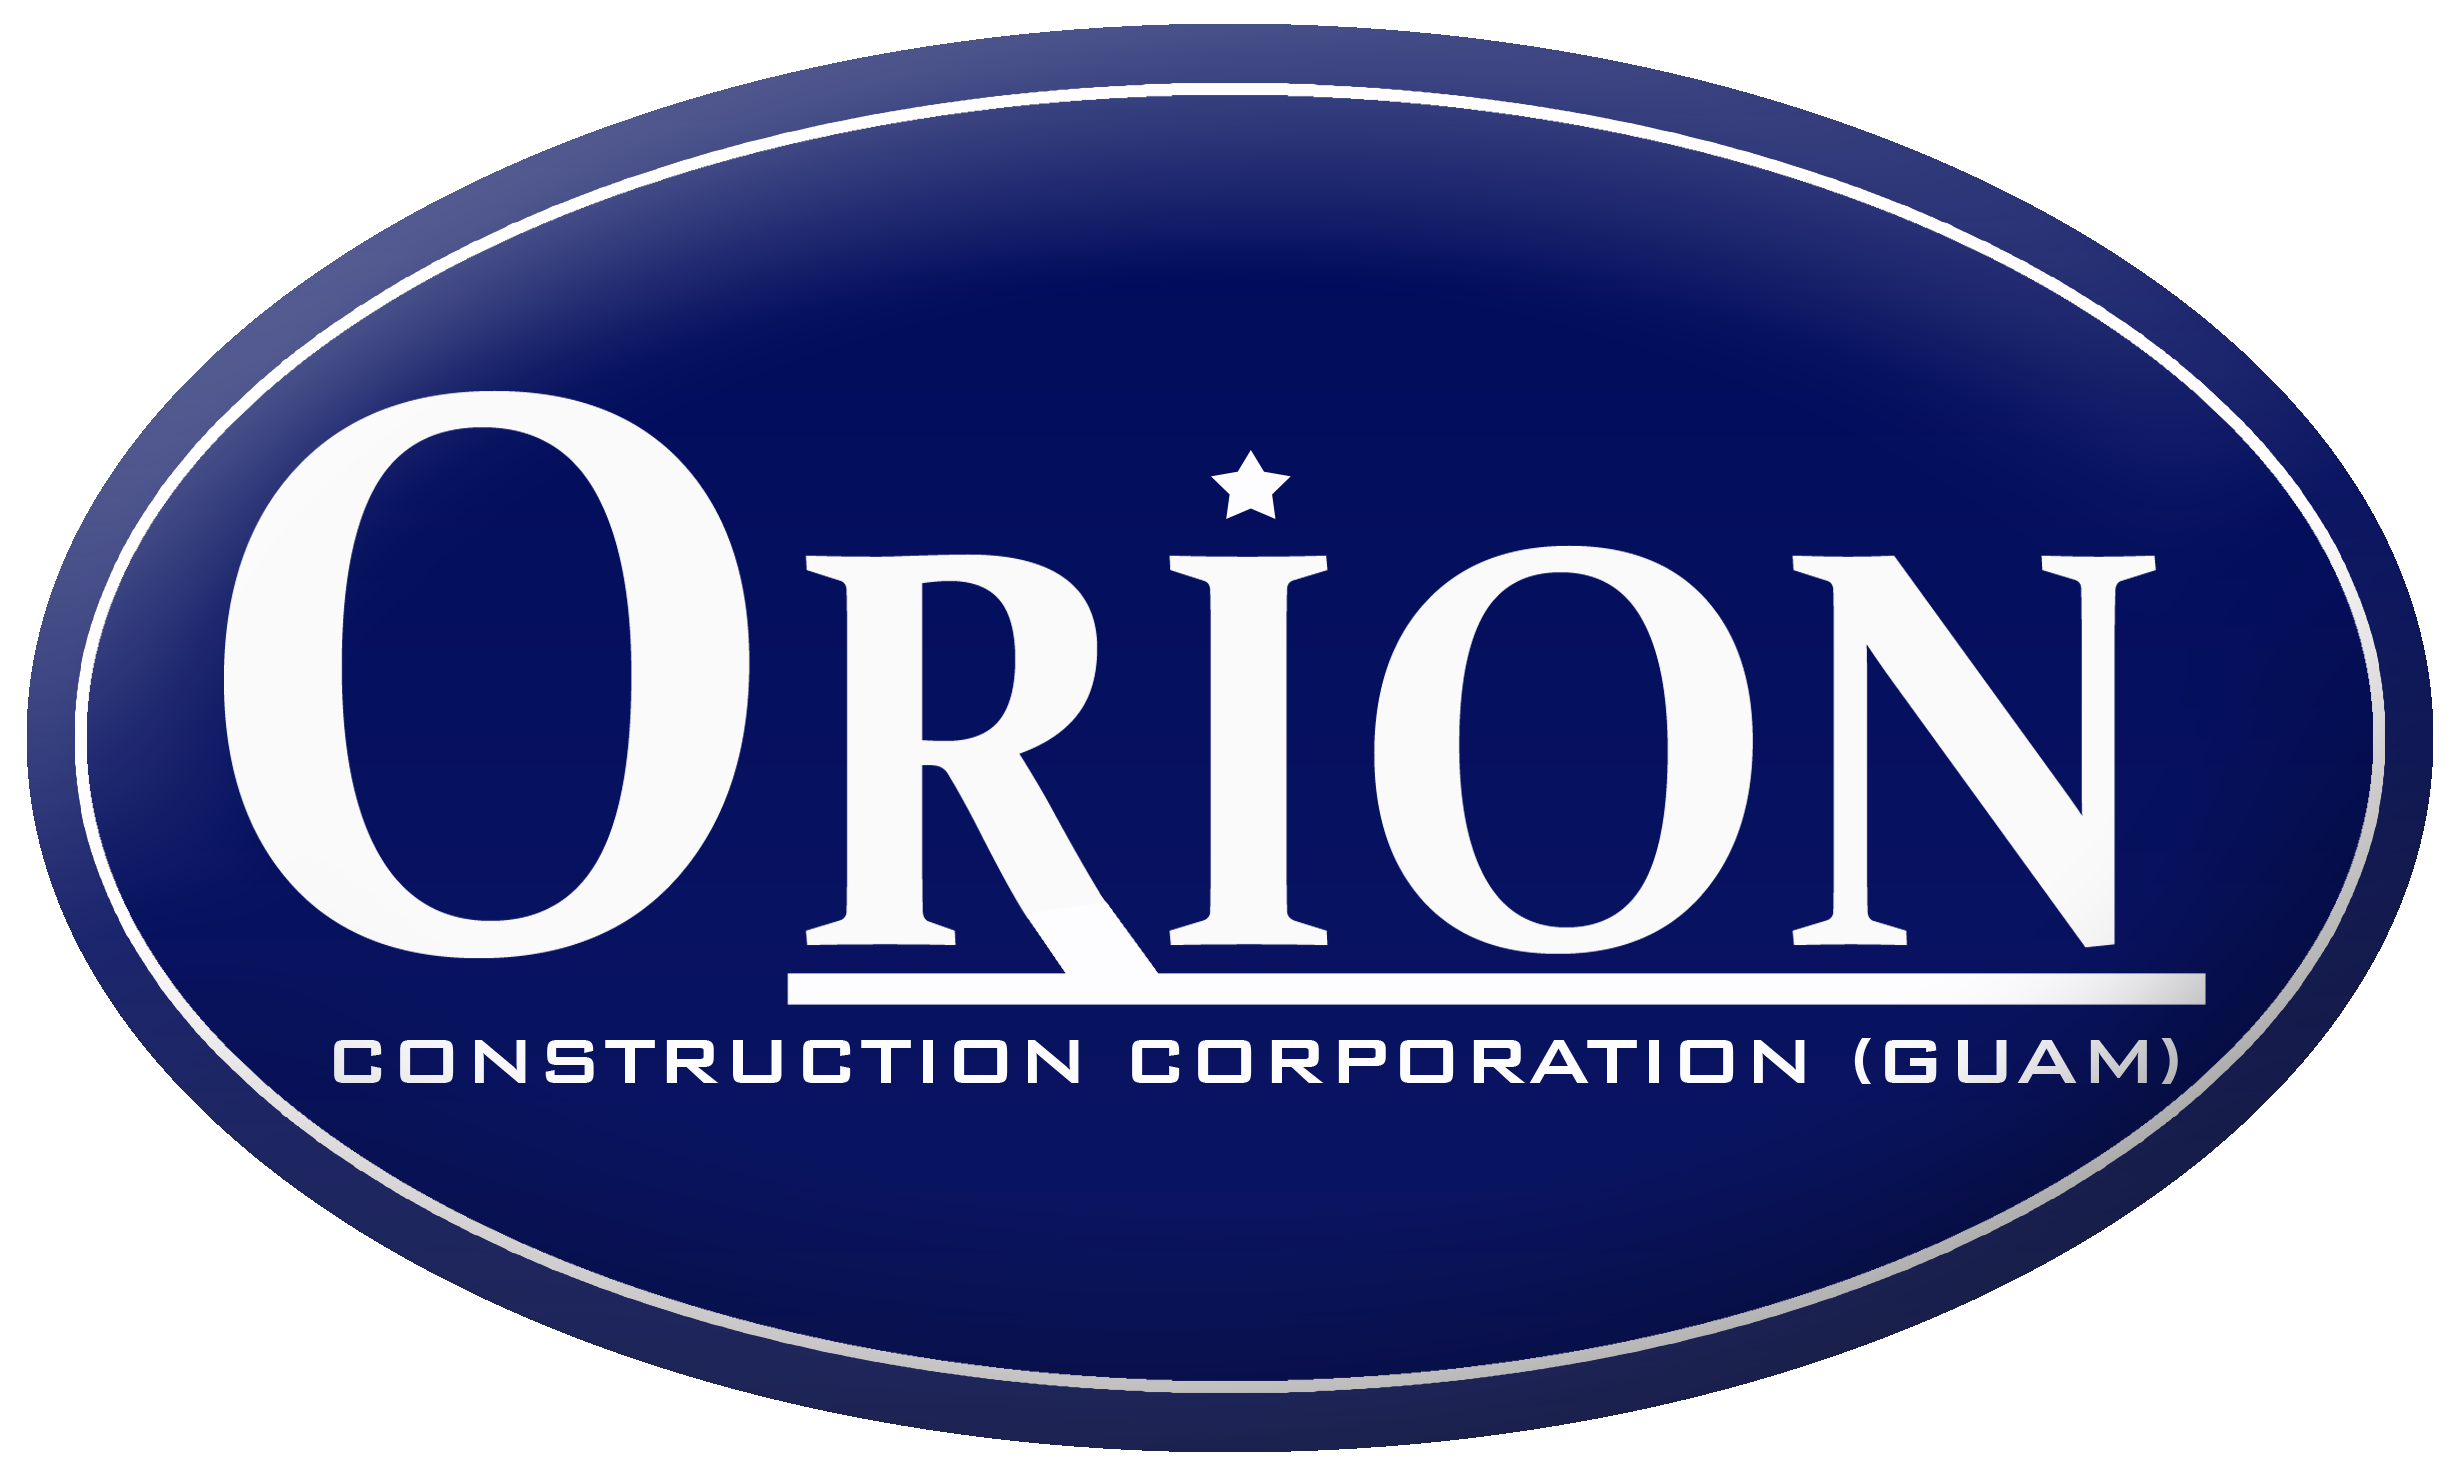 ORION CONSTRUCTION CORPORATION (GUAM)